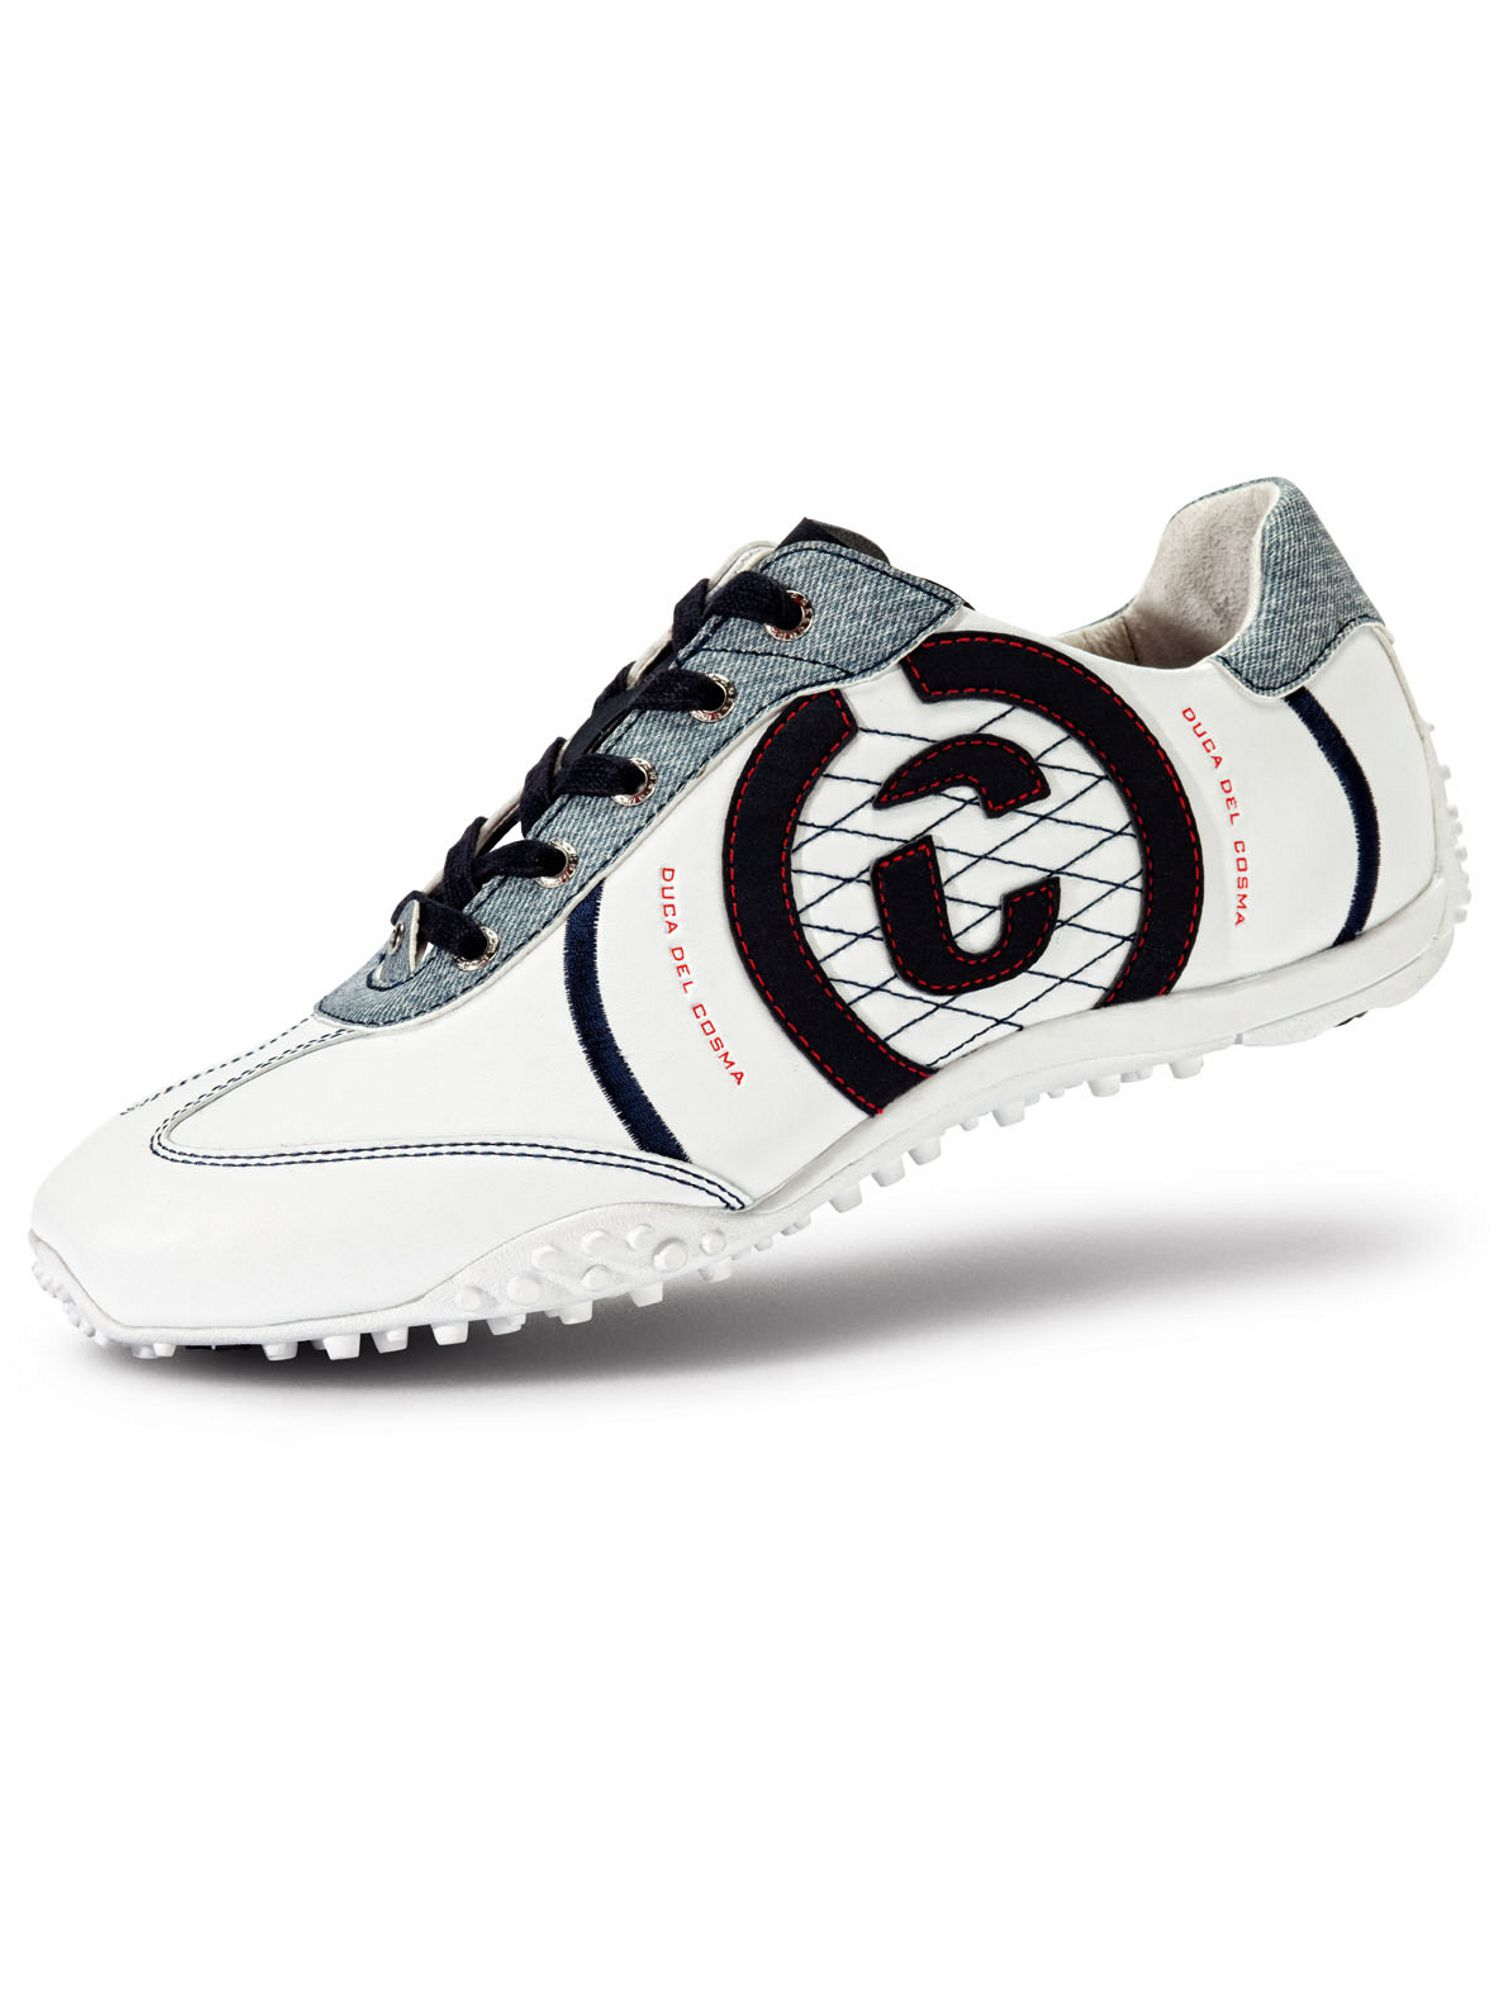 Kuba golf shoes